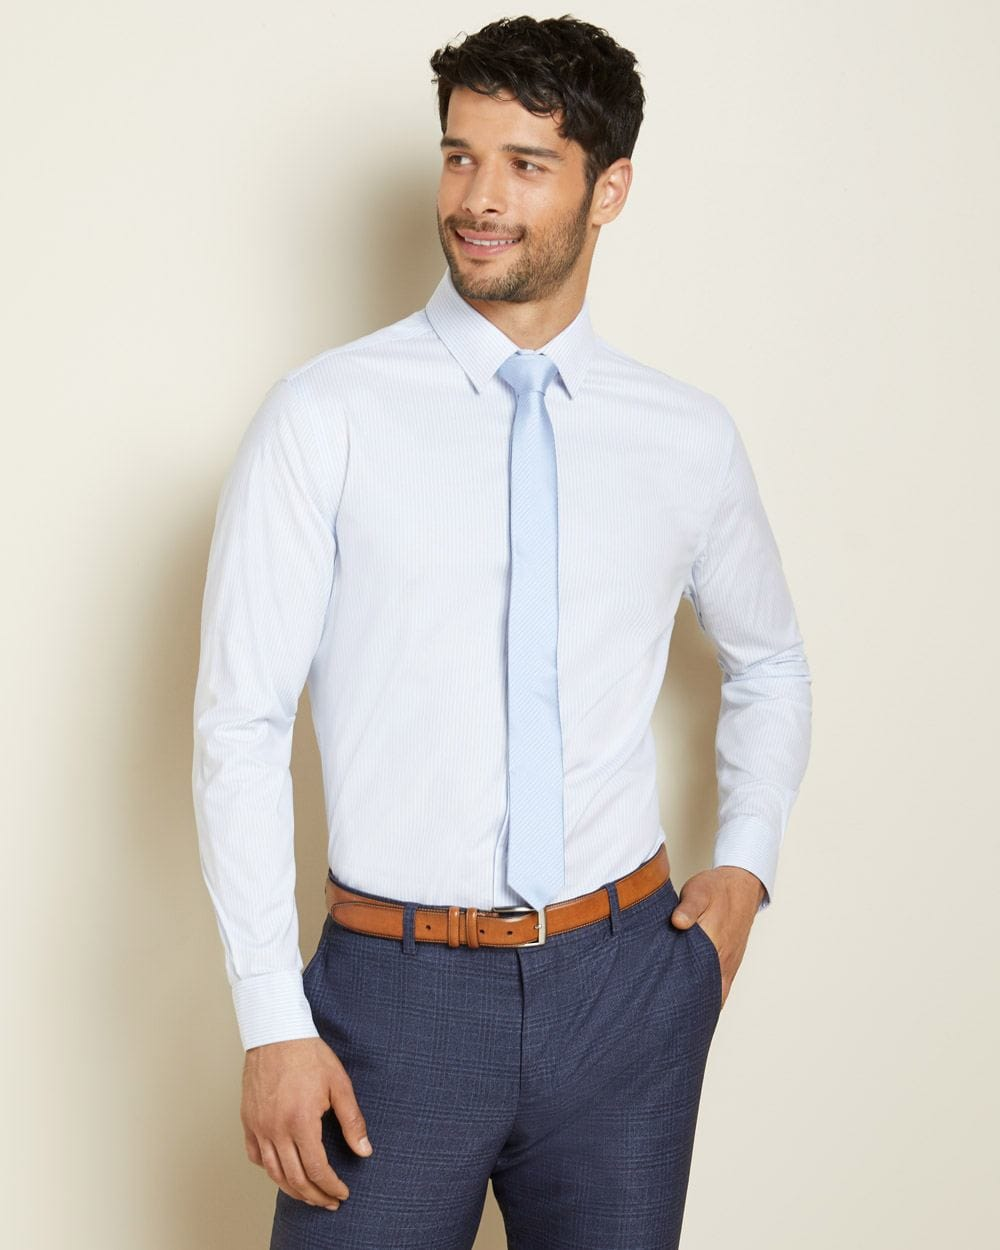 Athletic Fit striped performance dress shirt